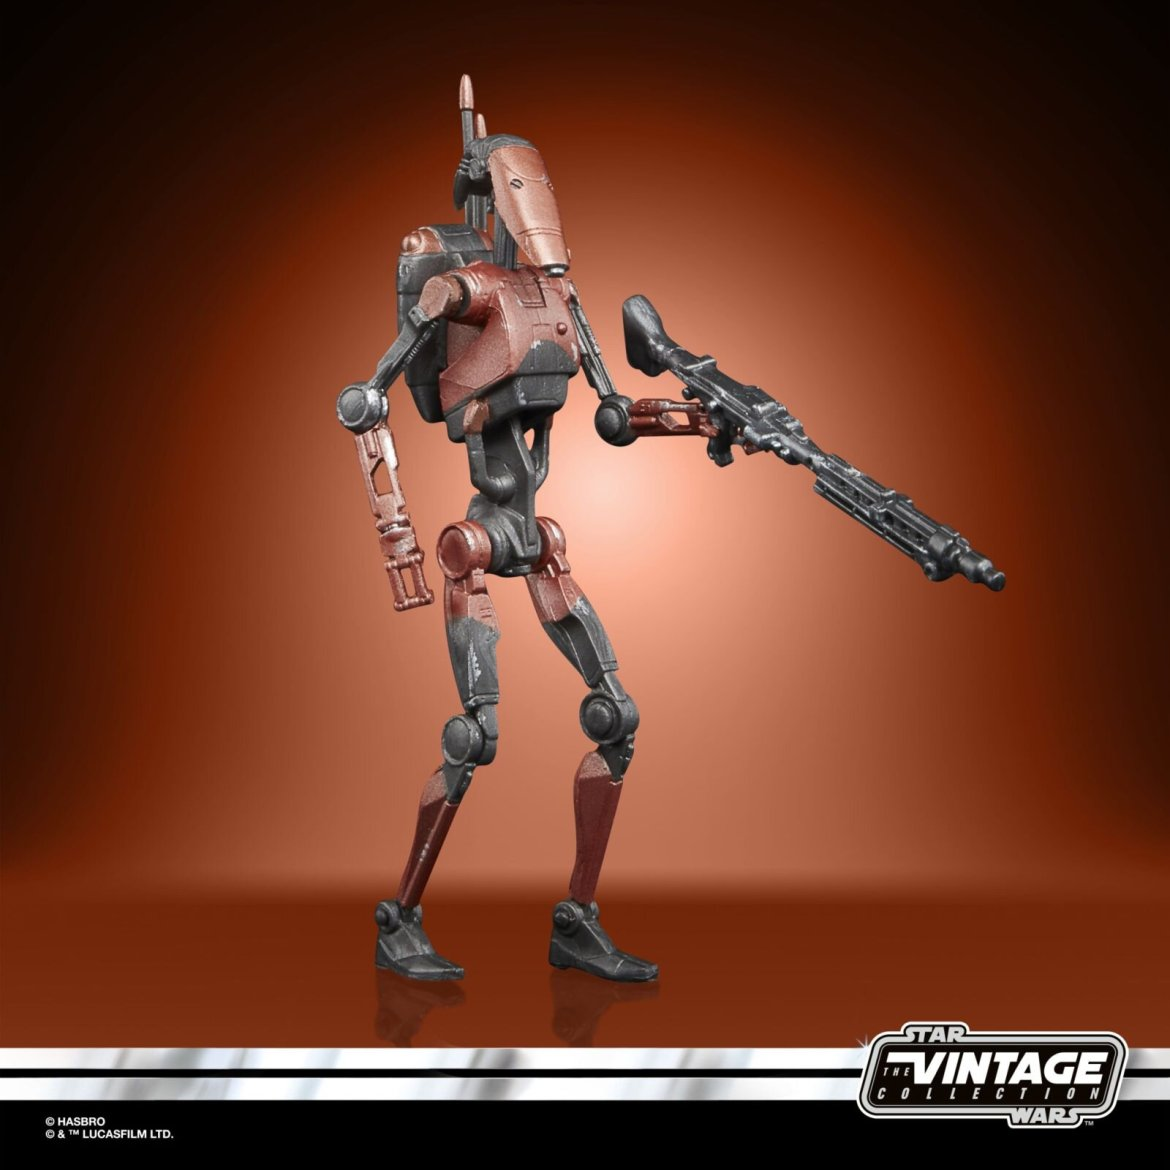 STAR WARS THE VINTAGE COLLECTION GAMING GREATS 3.75-INCH HEAVY BATTLE DROID Figure (3).jpg